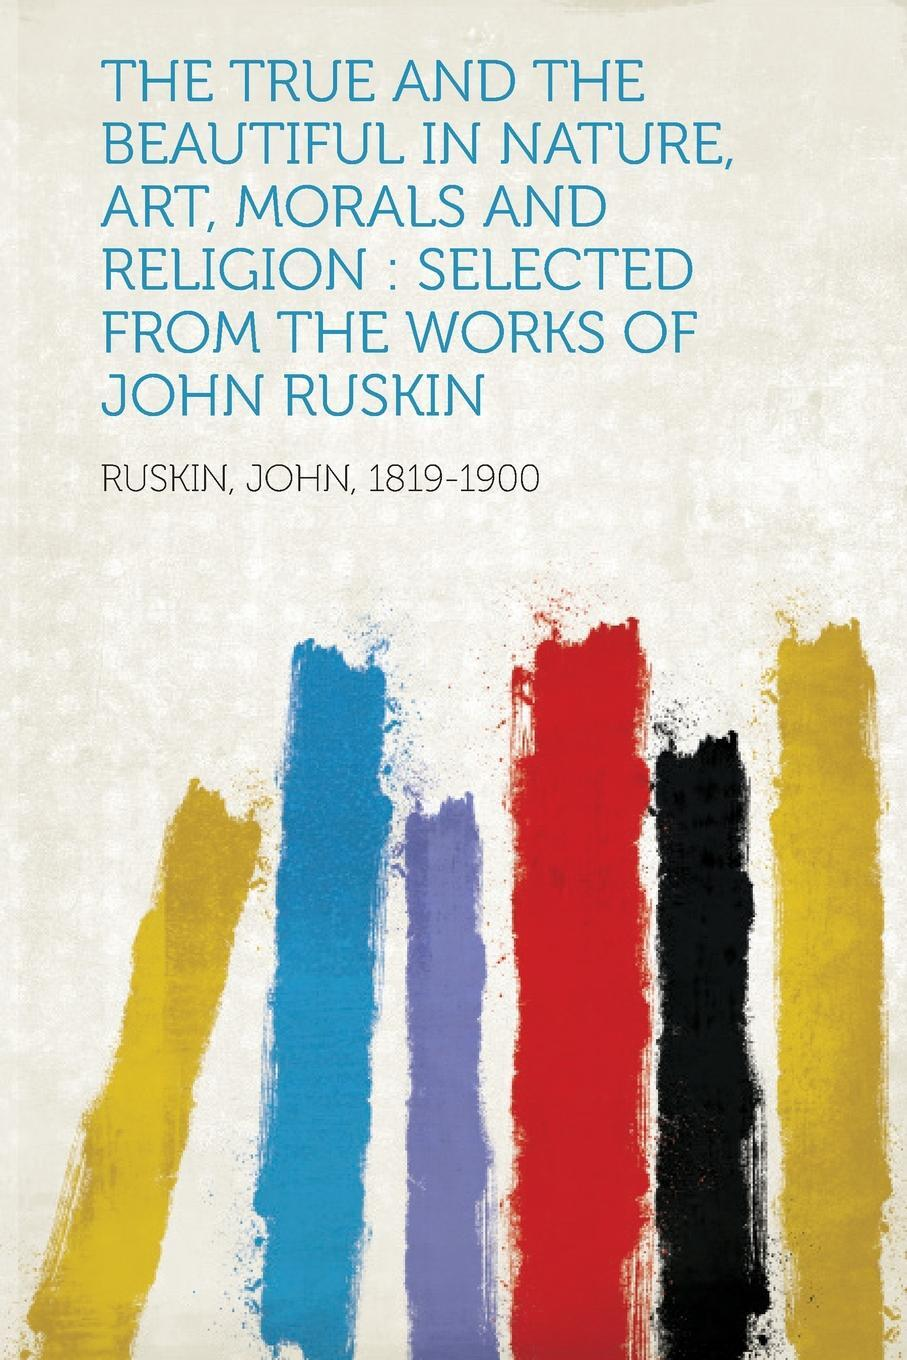 The True and the Beautiful in Nature, Art, Morals and Religion. Selected from the Works of John Ruskin